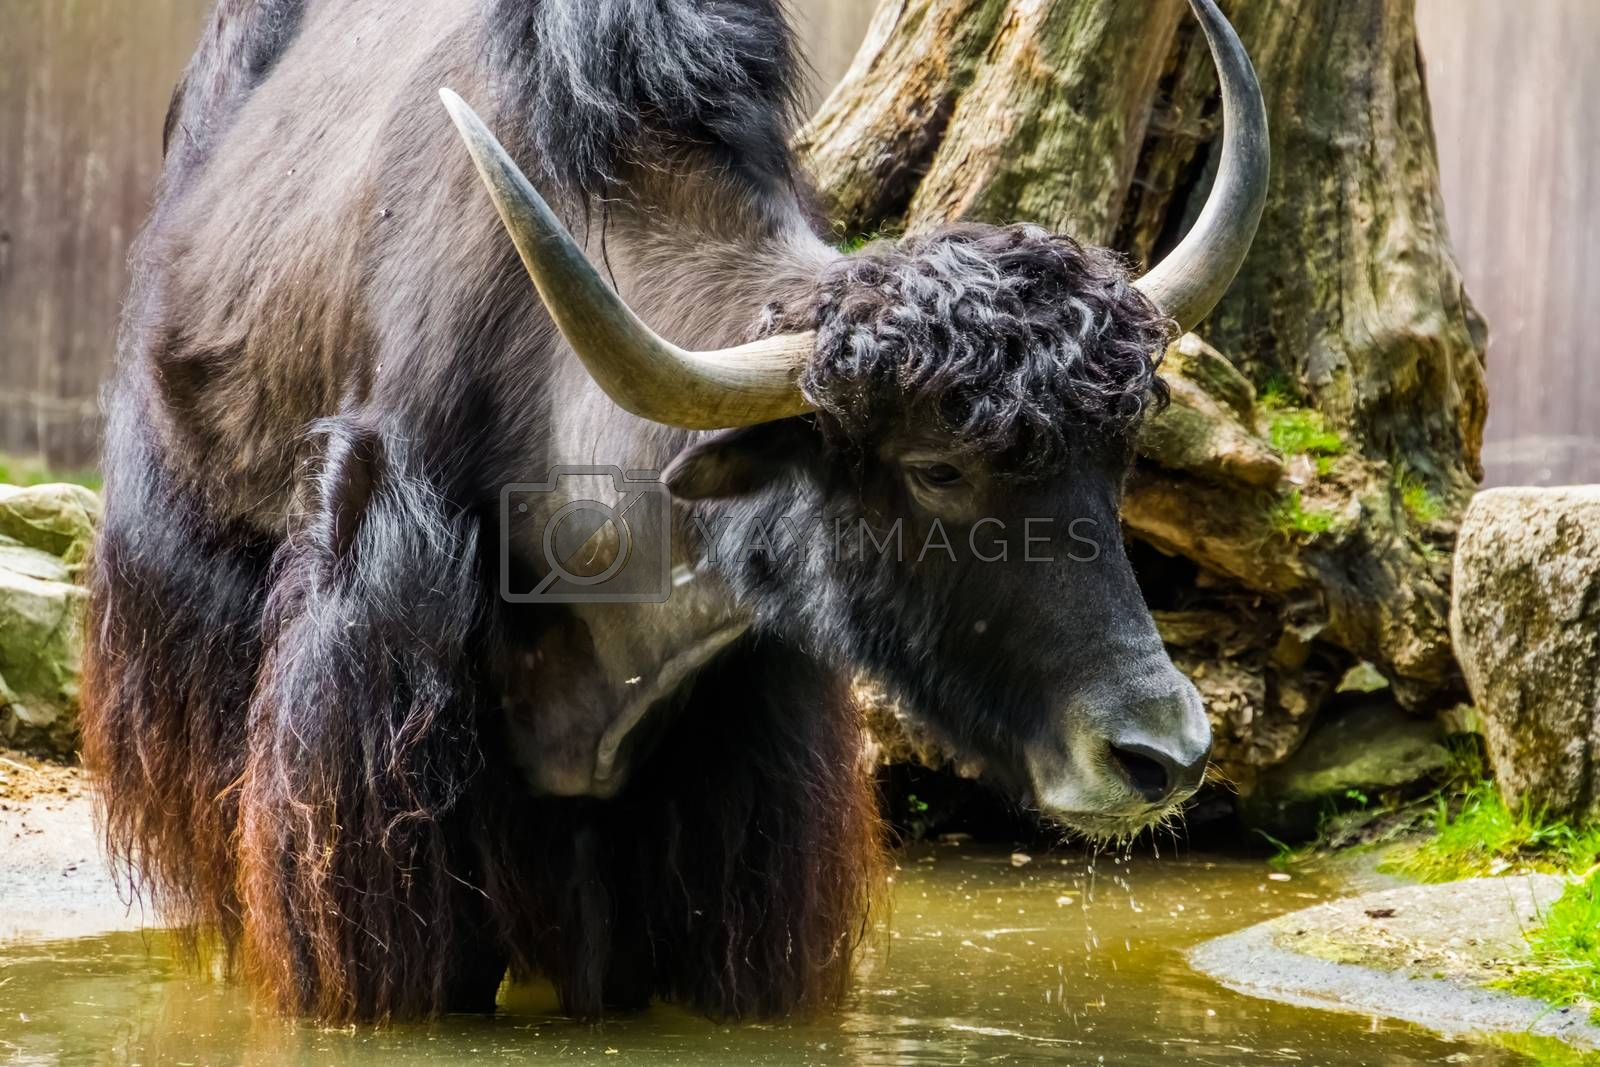 closeup of a wild yak standing in a water puddle, tropical cattle specie from the himalayas of Asia